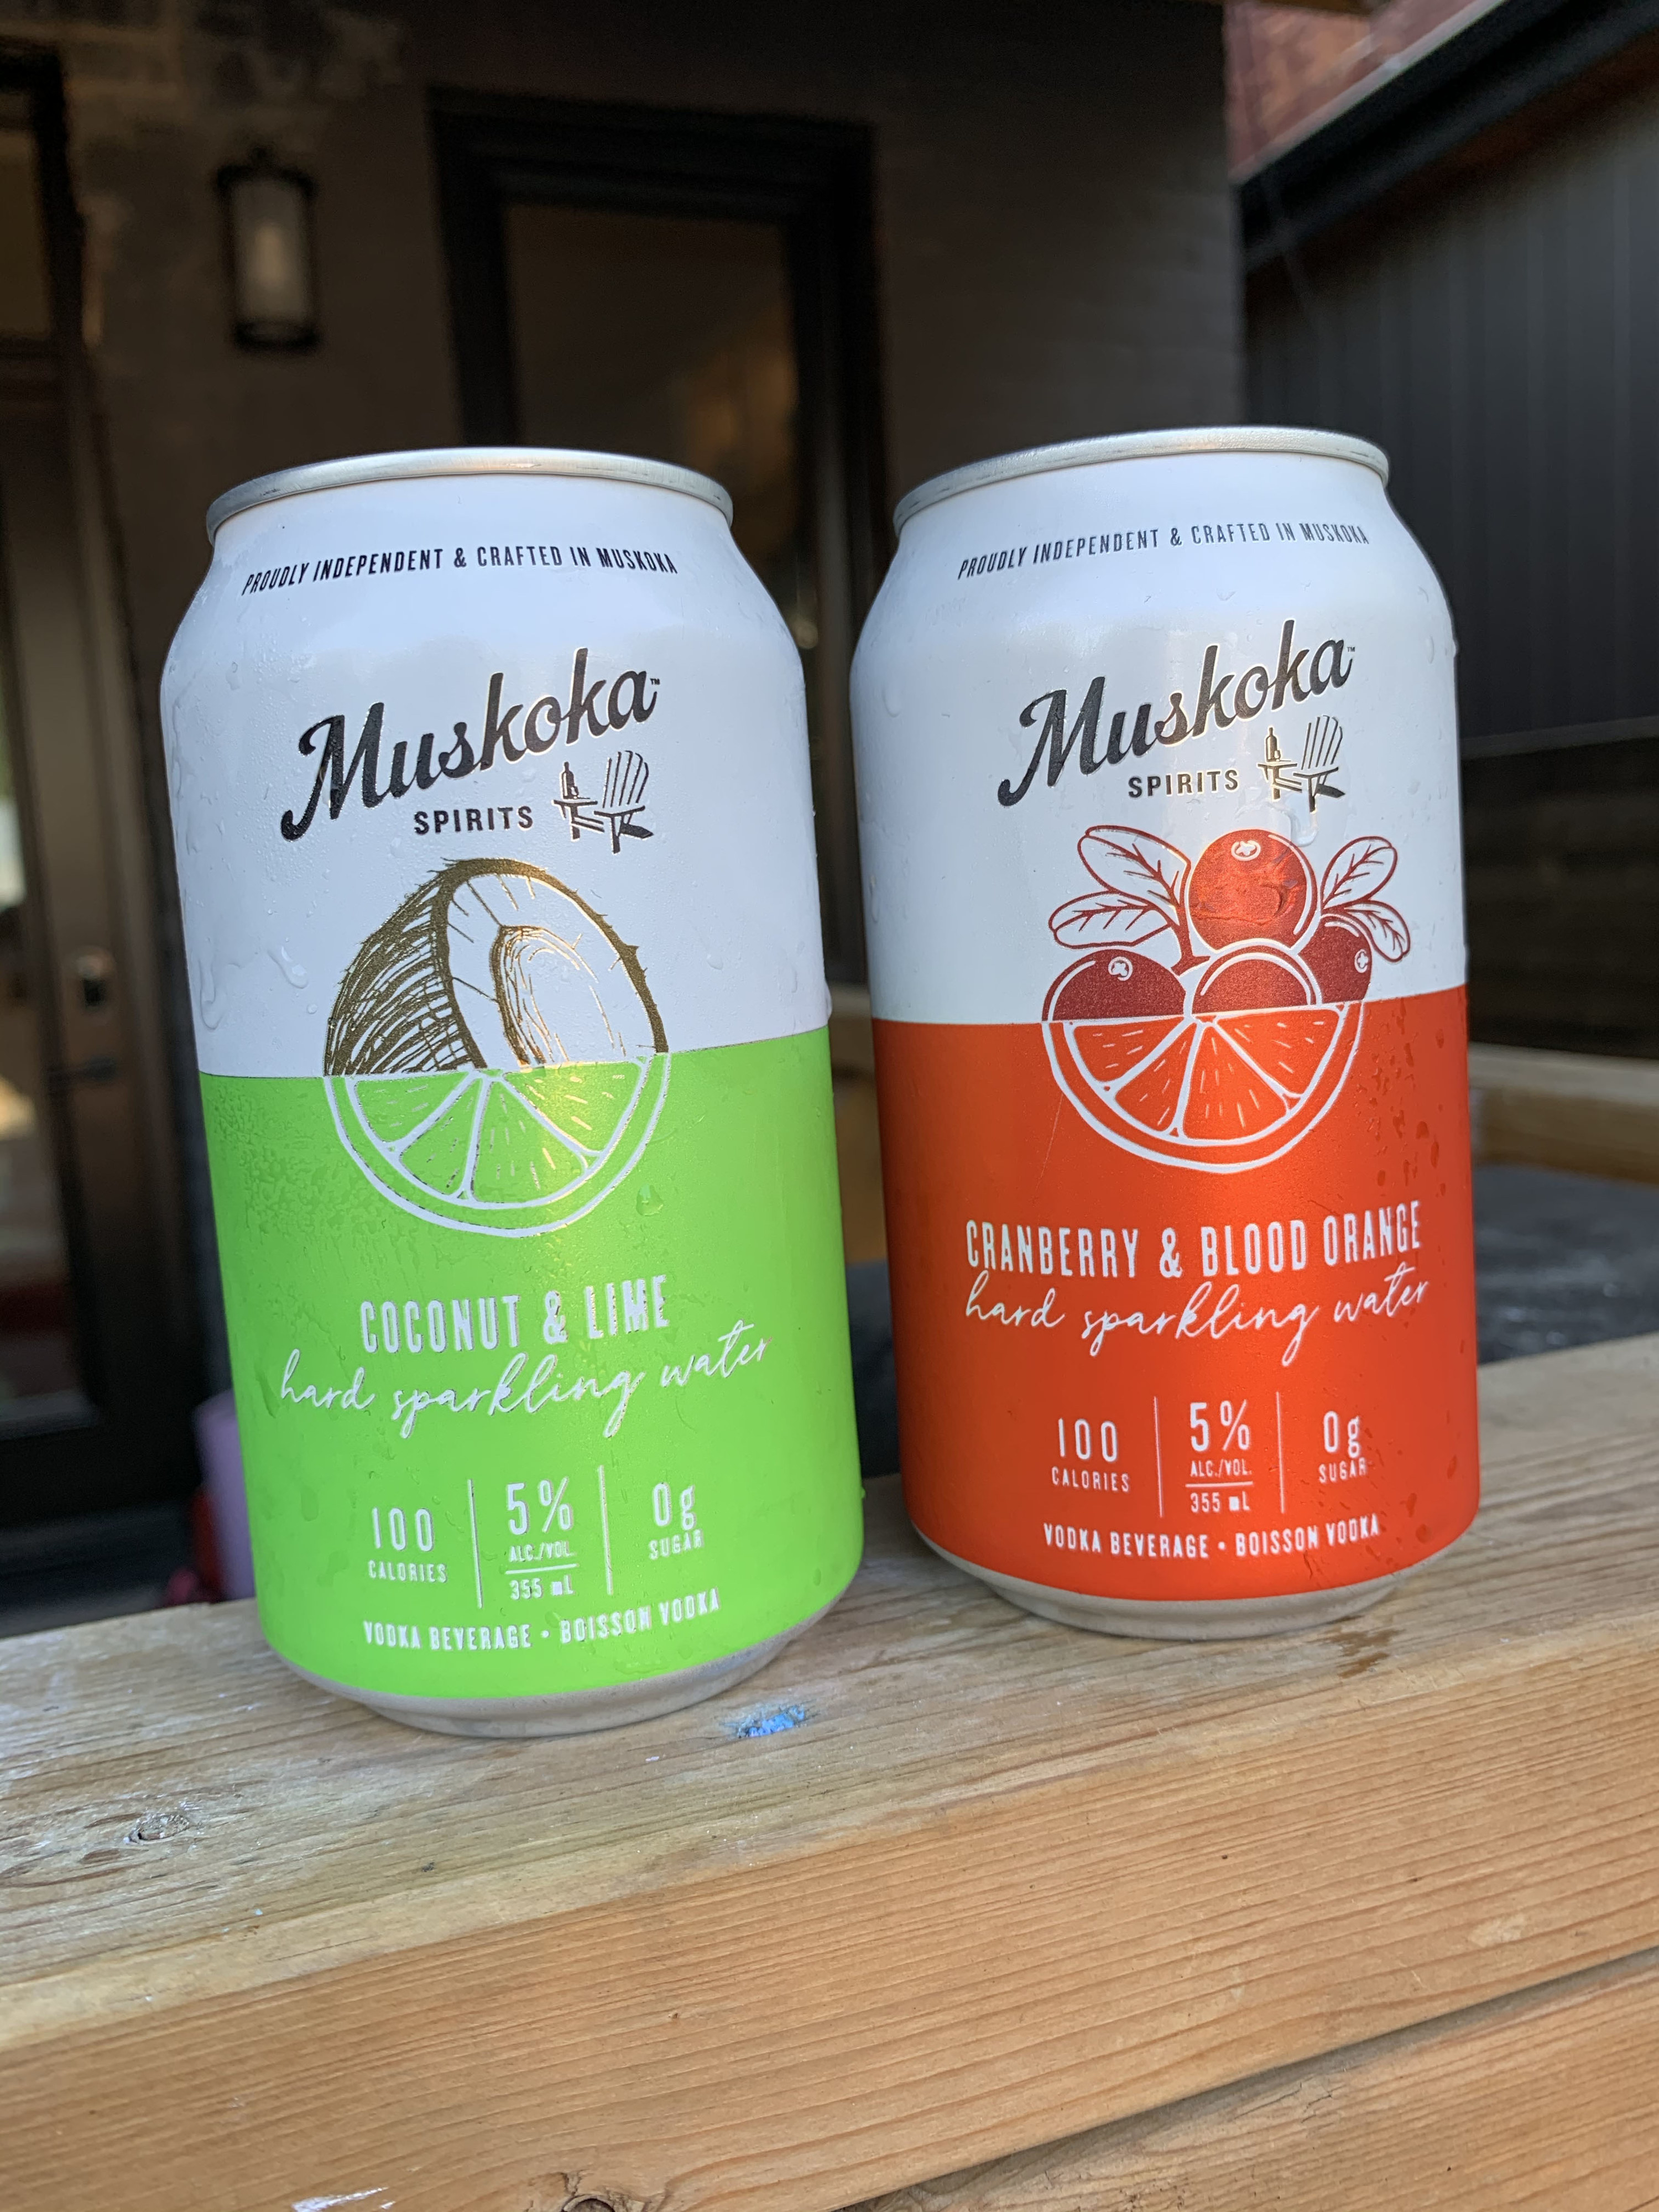 Two cans of Muskoka Spirits – one can is green and white with half an illustration of a coconut intersecting with half a lime. The other can is red and white with half an illustration of cranberry intersection with half an illustration of blood orange.